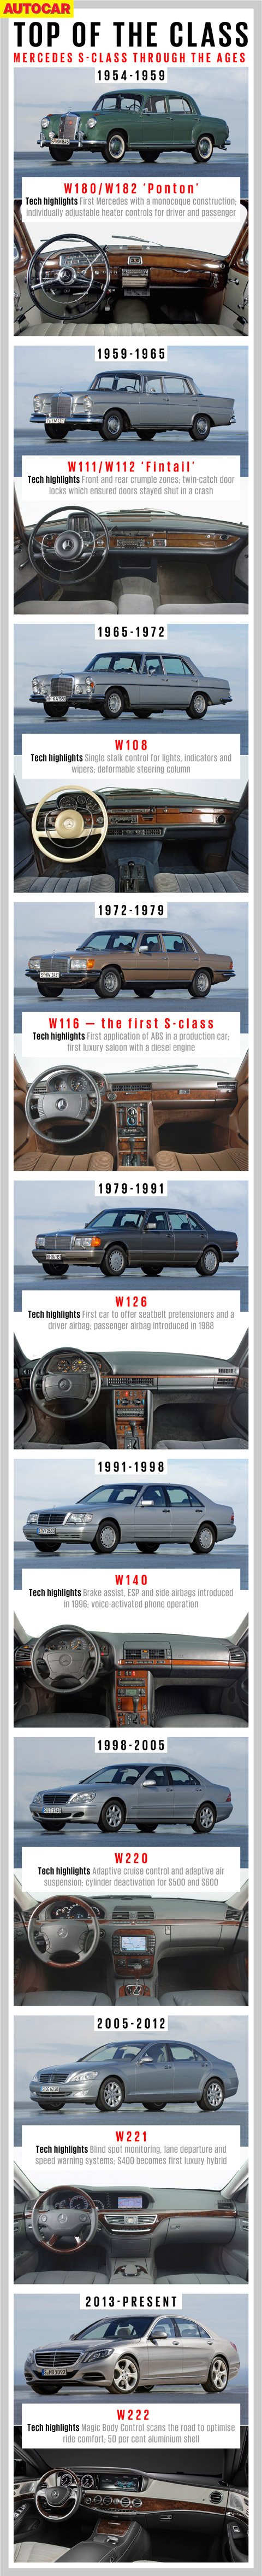 History of the Mercedes S-class